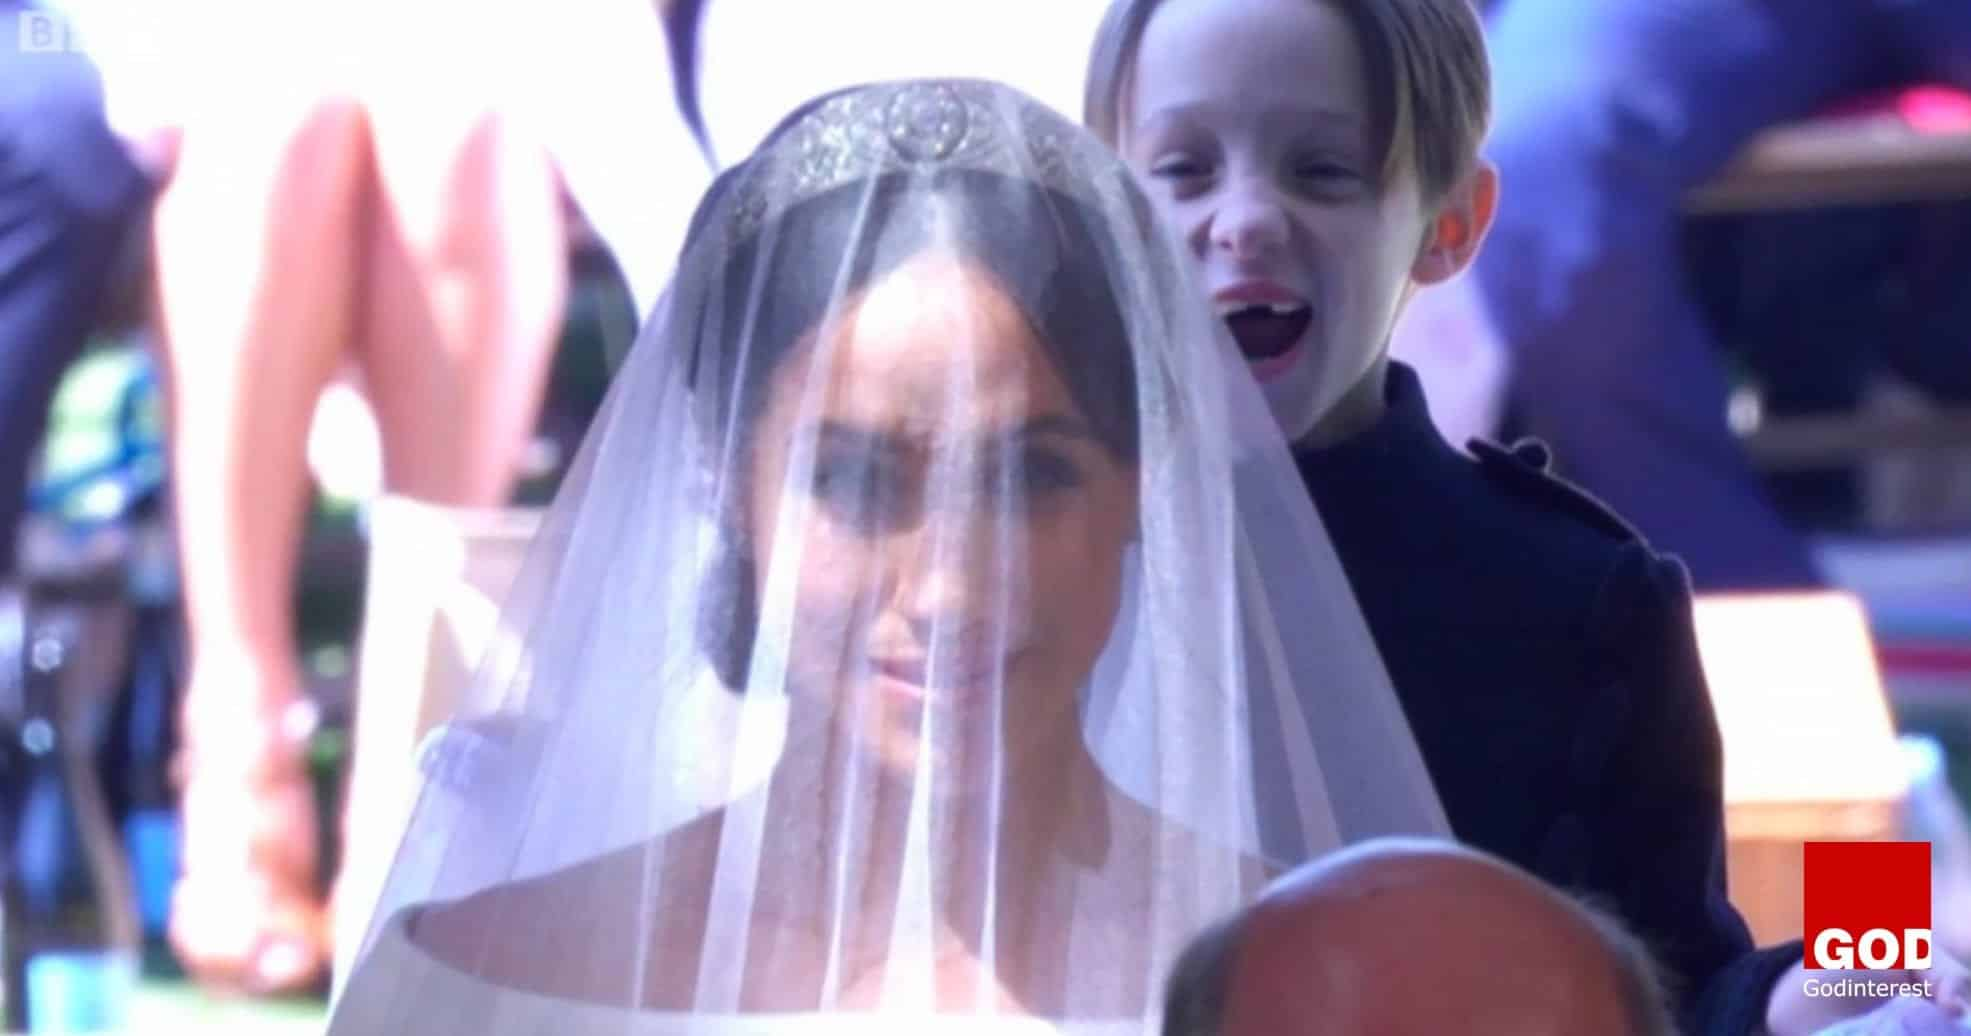 Smiling Page Boy at Royal Wedding That Captured the Heart of Christ